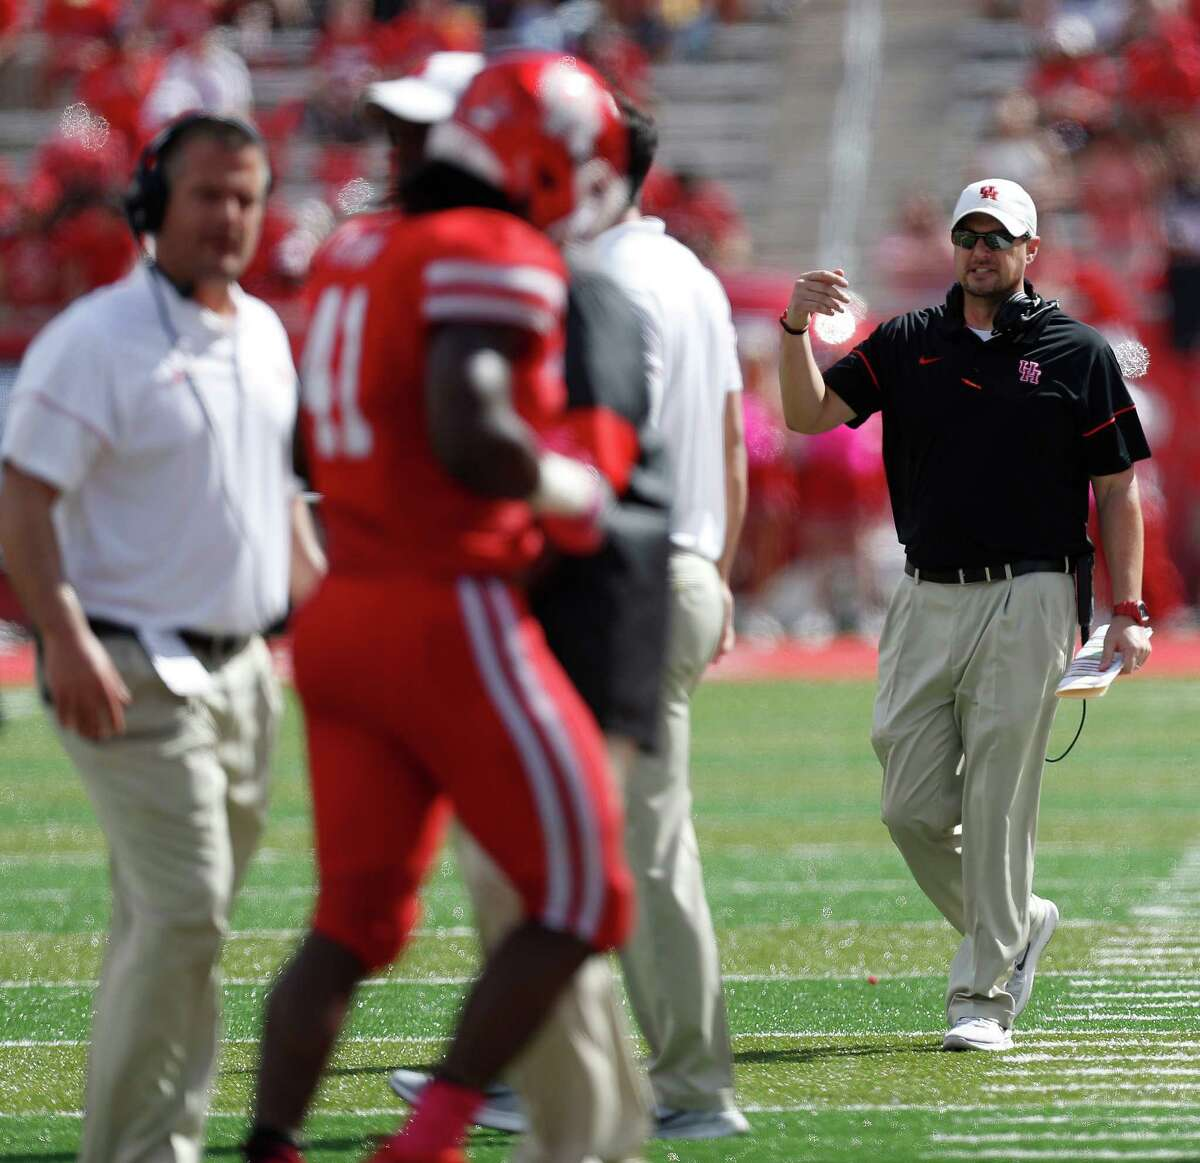 Houston Cougars head coach Tom Herman on the sideline during the second quarter of a college football game at TDECU Stadium, Saturday,Oct. 29, 2016 in Houston.